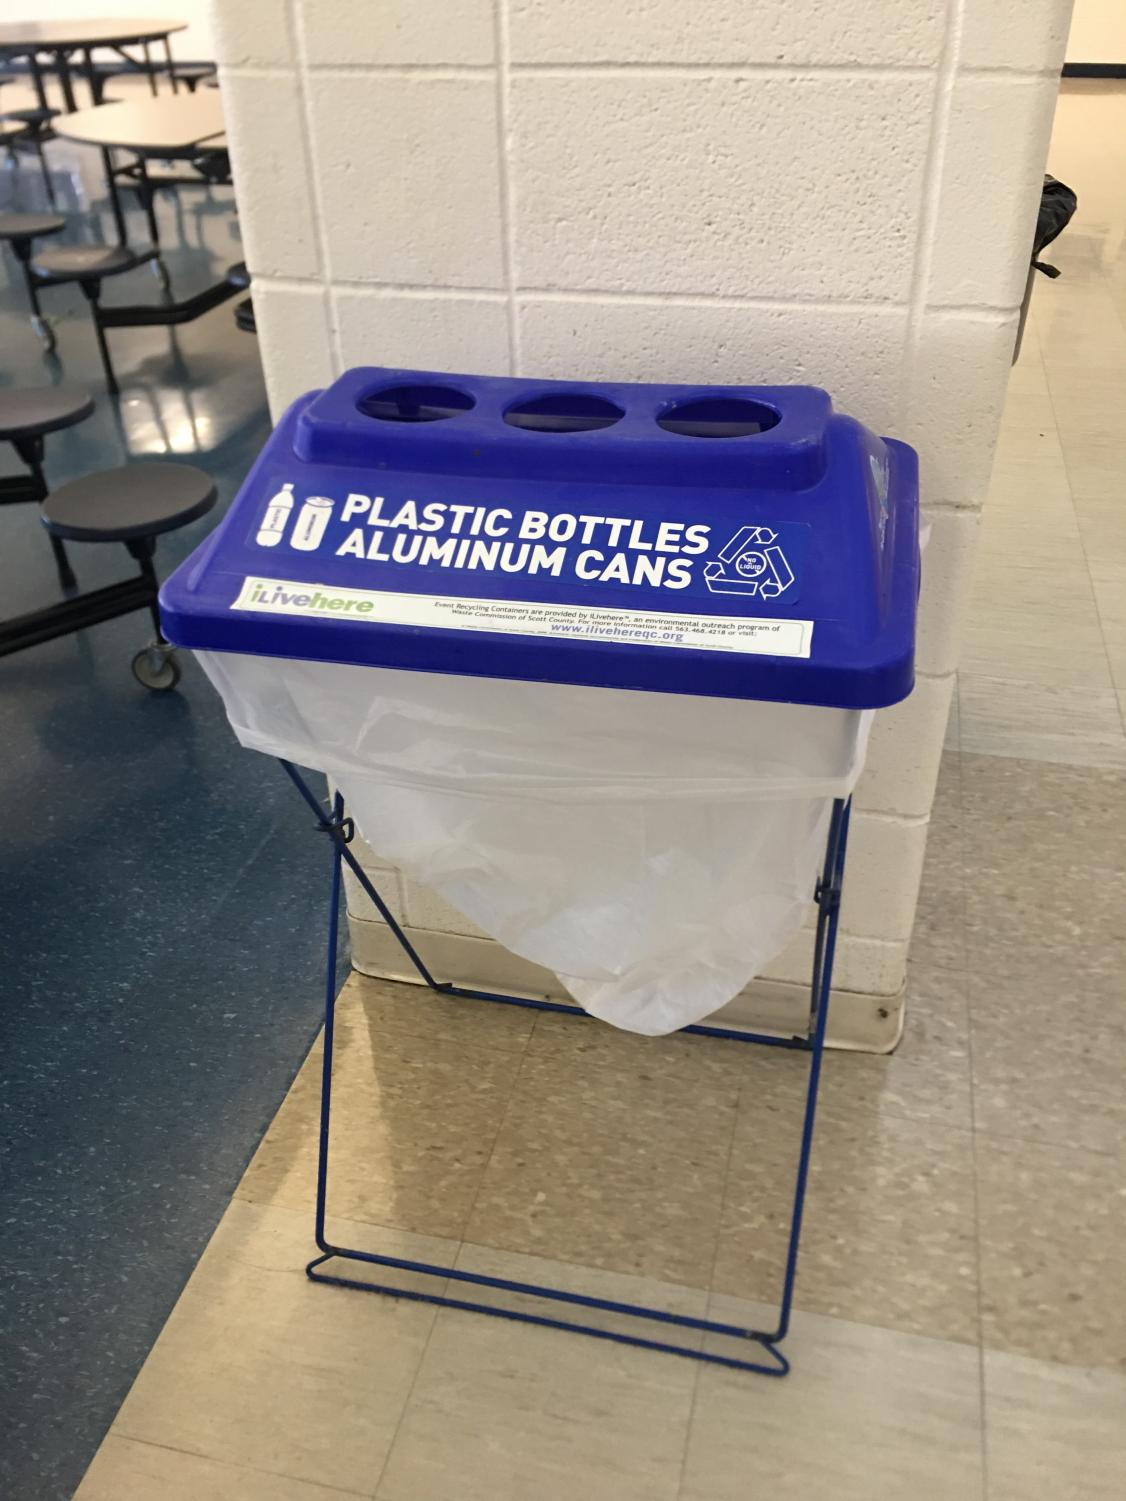 Recycling bins in the lunchroom are emptied into large containers outside and sent to the landfill across the Mississippi river.